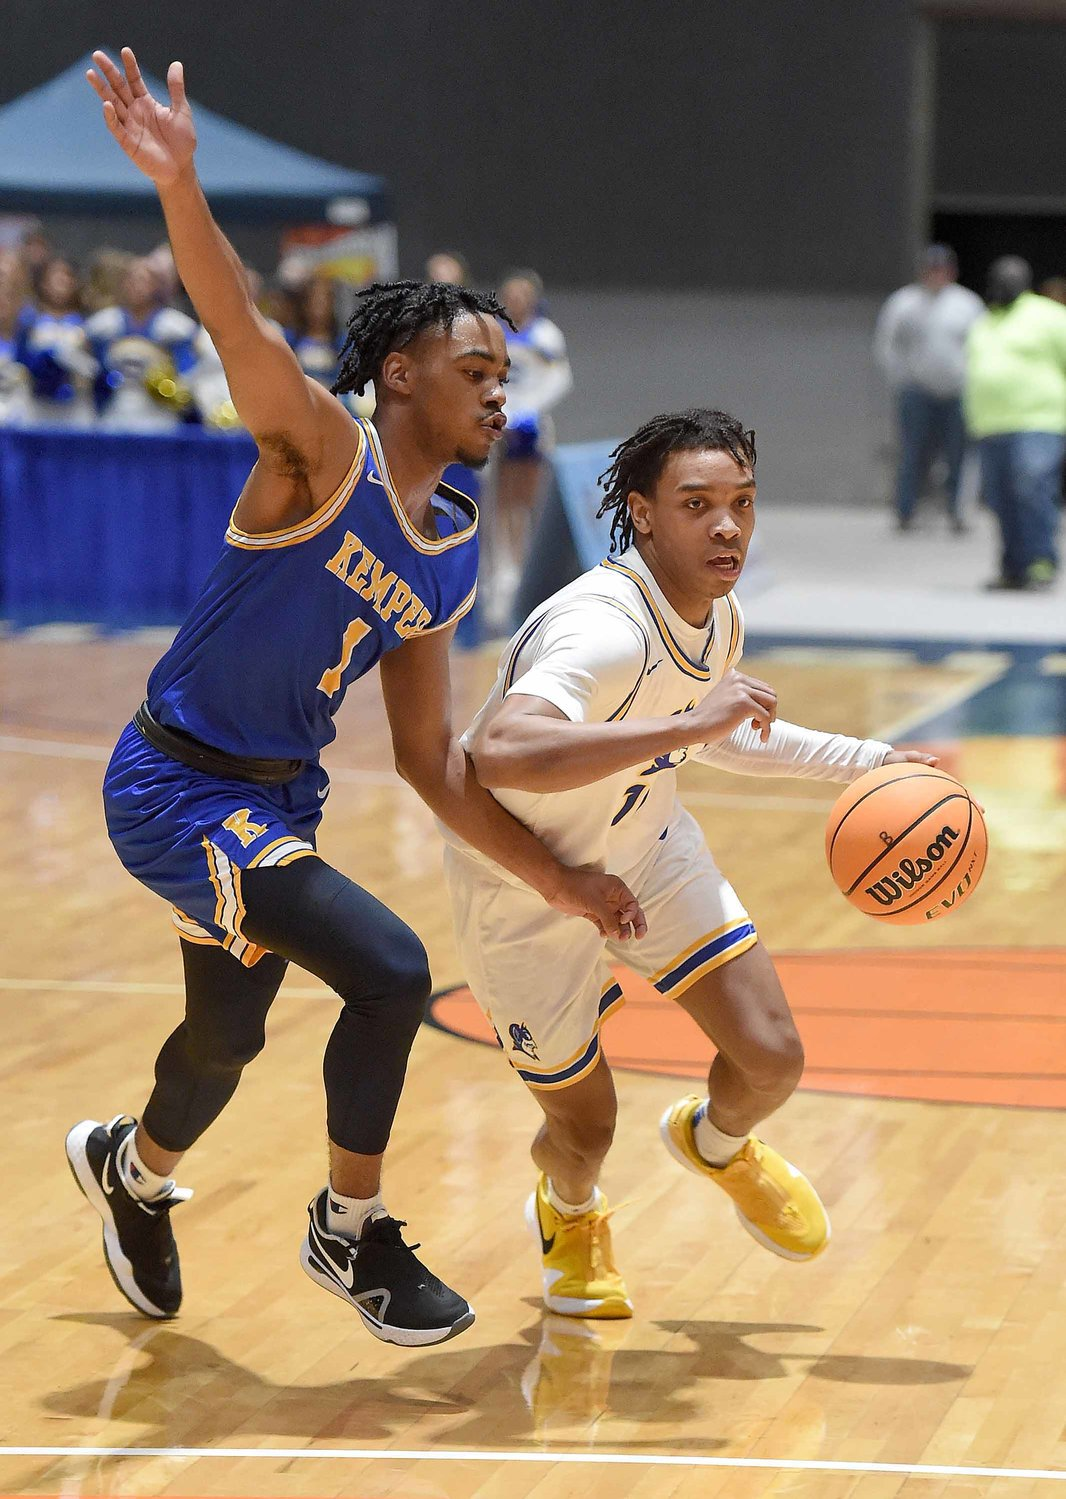 Kemper County's James Granger (1) defends against Booneville's L.J. Shumpert at the MHSAA State Basketball Tournament  semifinals on Wednesday, March 3, 2021, at the Mississippi Coliseum in Jackson, Miss.